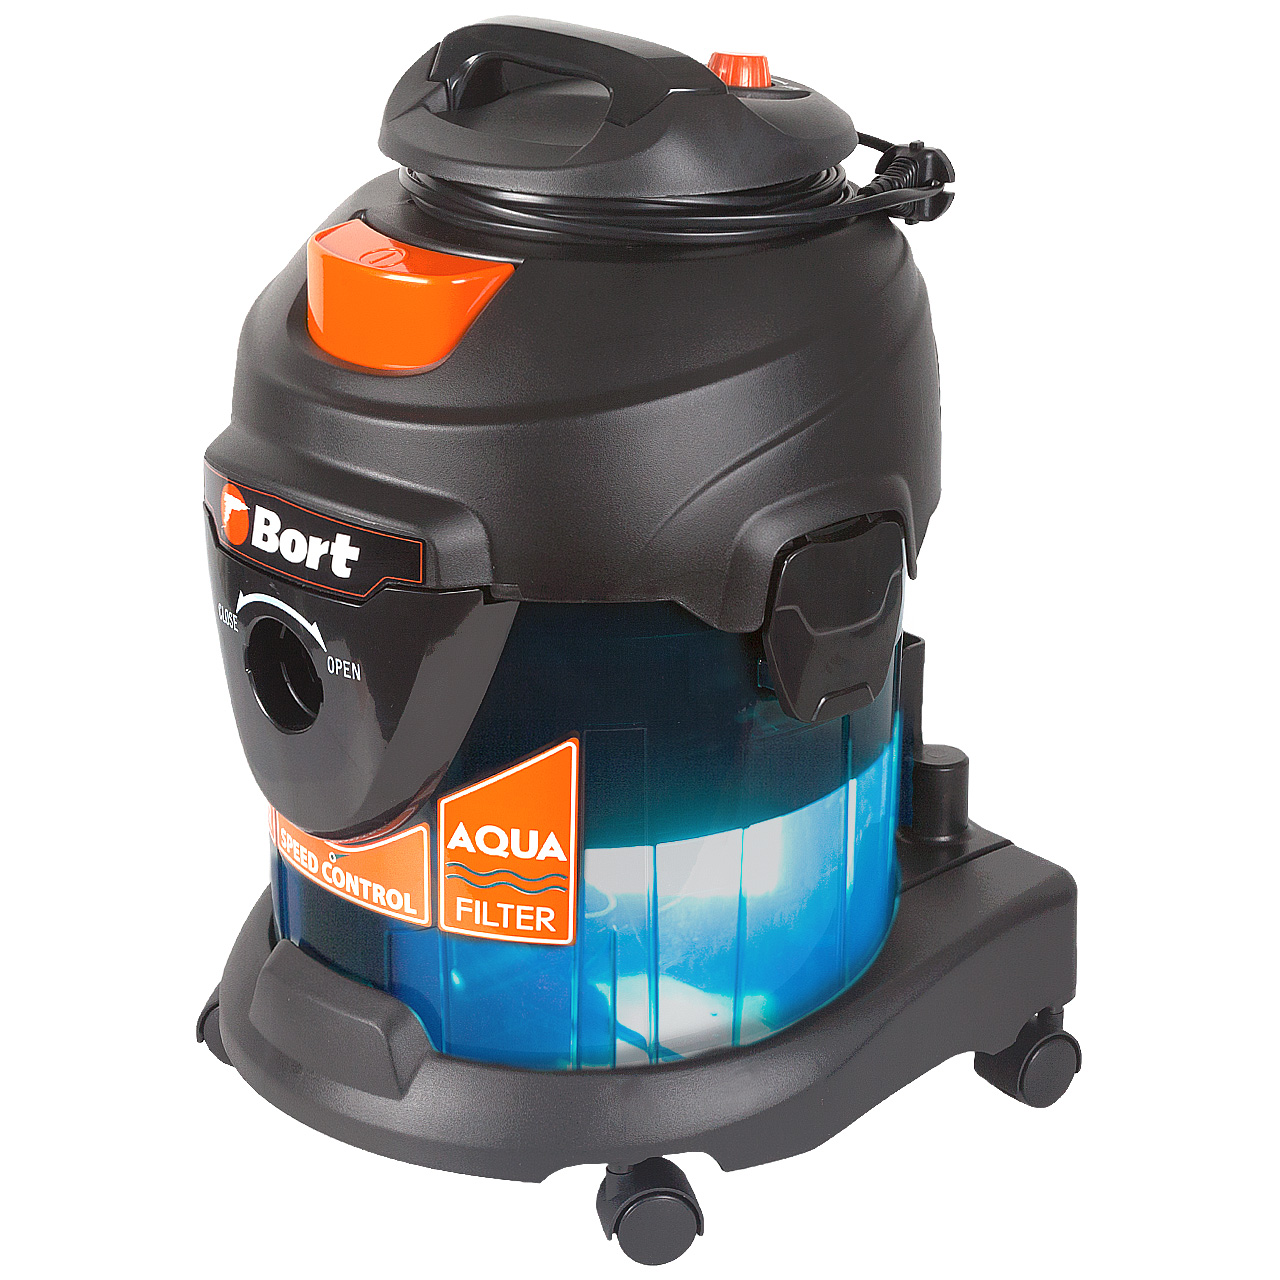 Vacuum cleaner with aquafilter Bort BSS-1415-Aqua (dry and wet cleaning, power 1400 W)